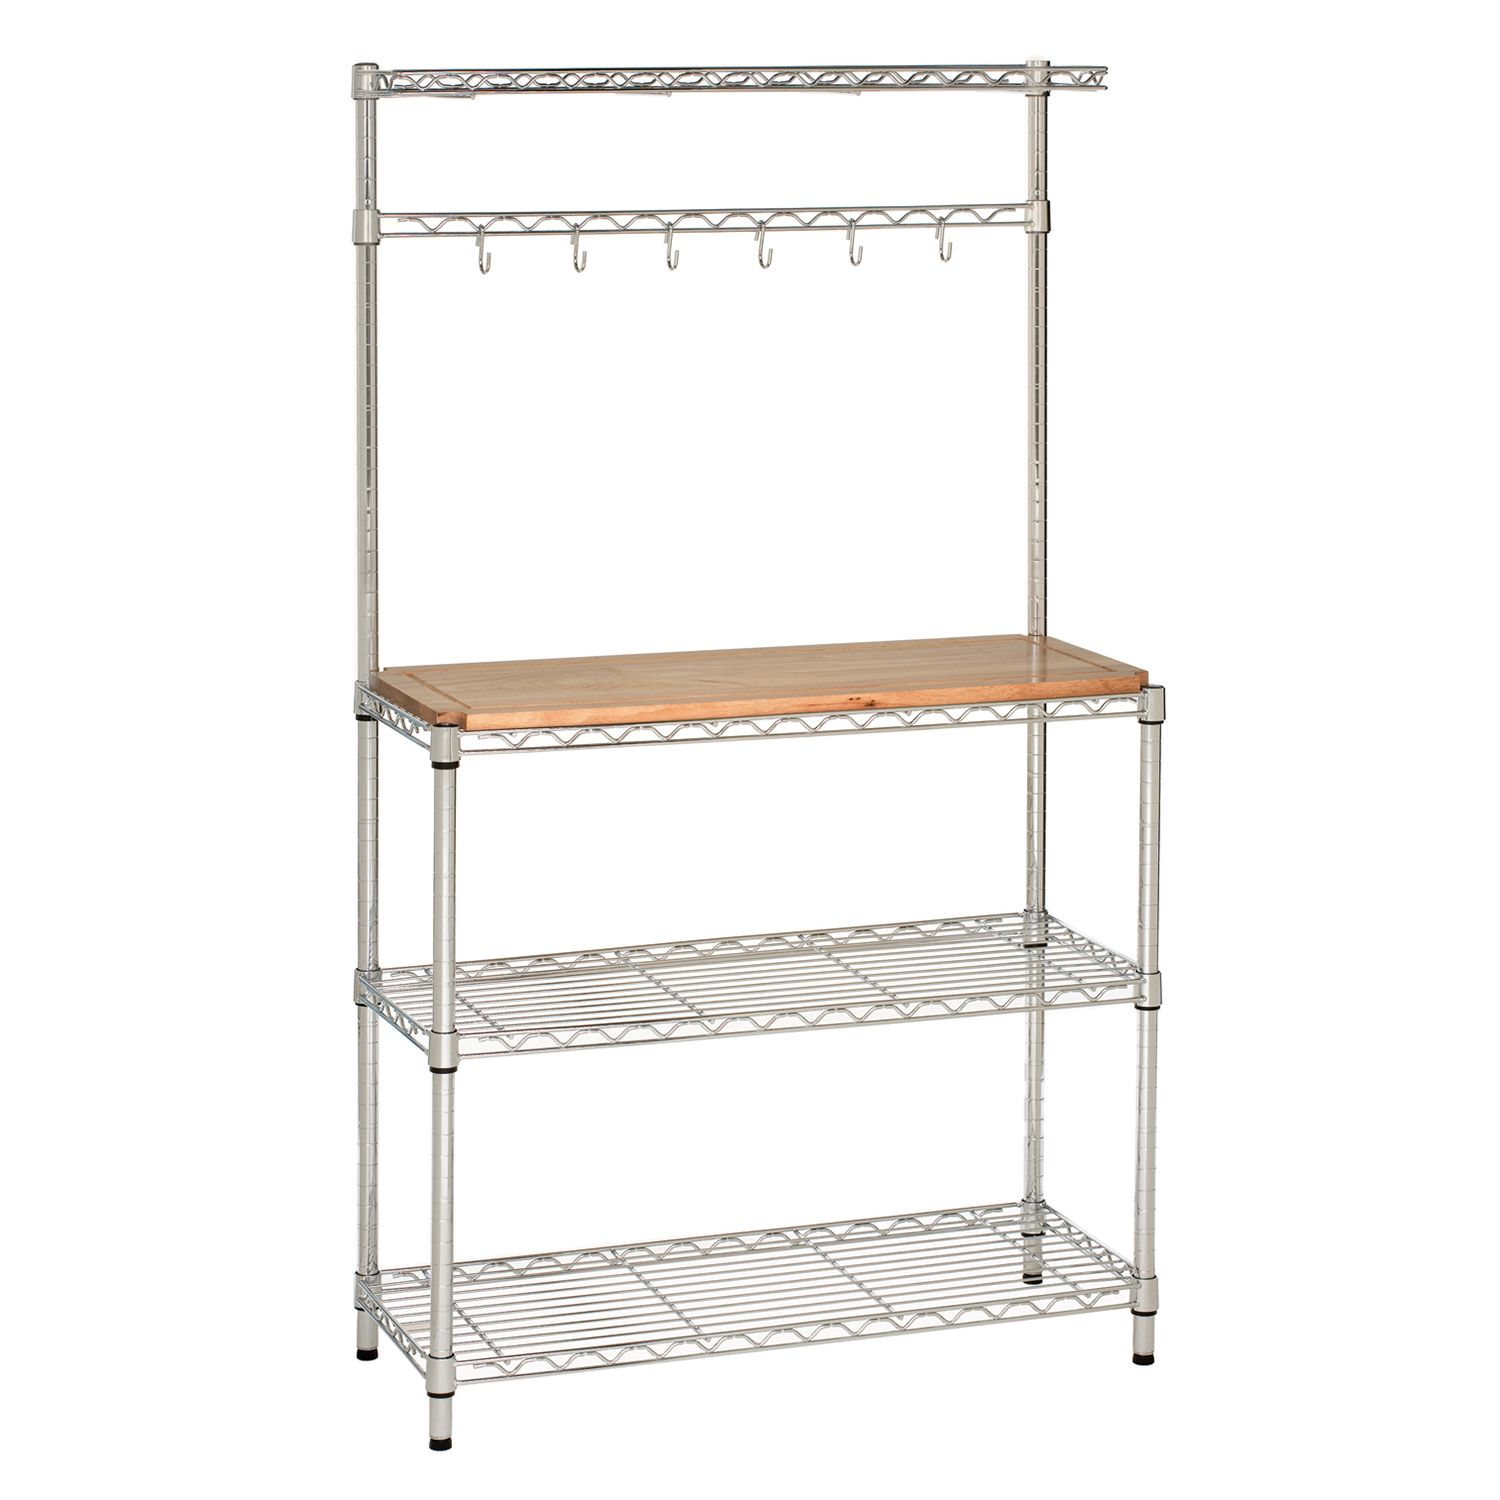 Seville Classics Baker's Rack Work Station Storage Counter Top Space 4 Shelves Adjustable Feet at Sears.com